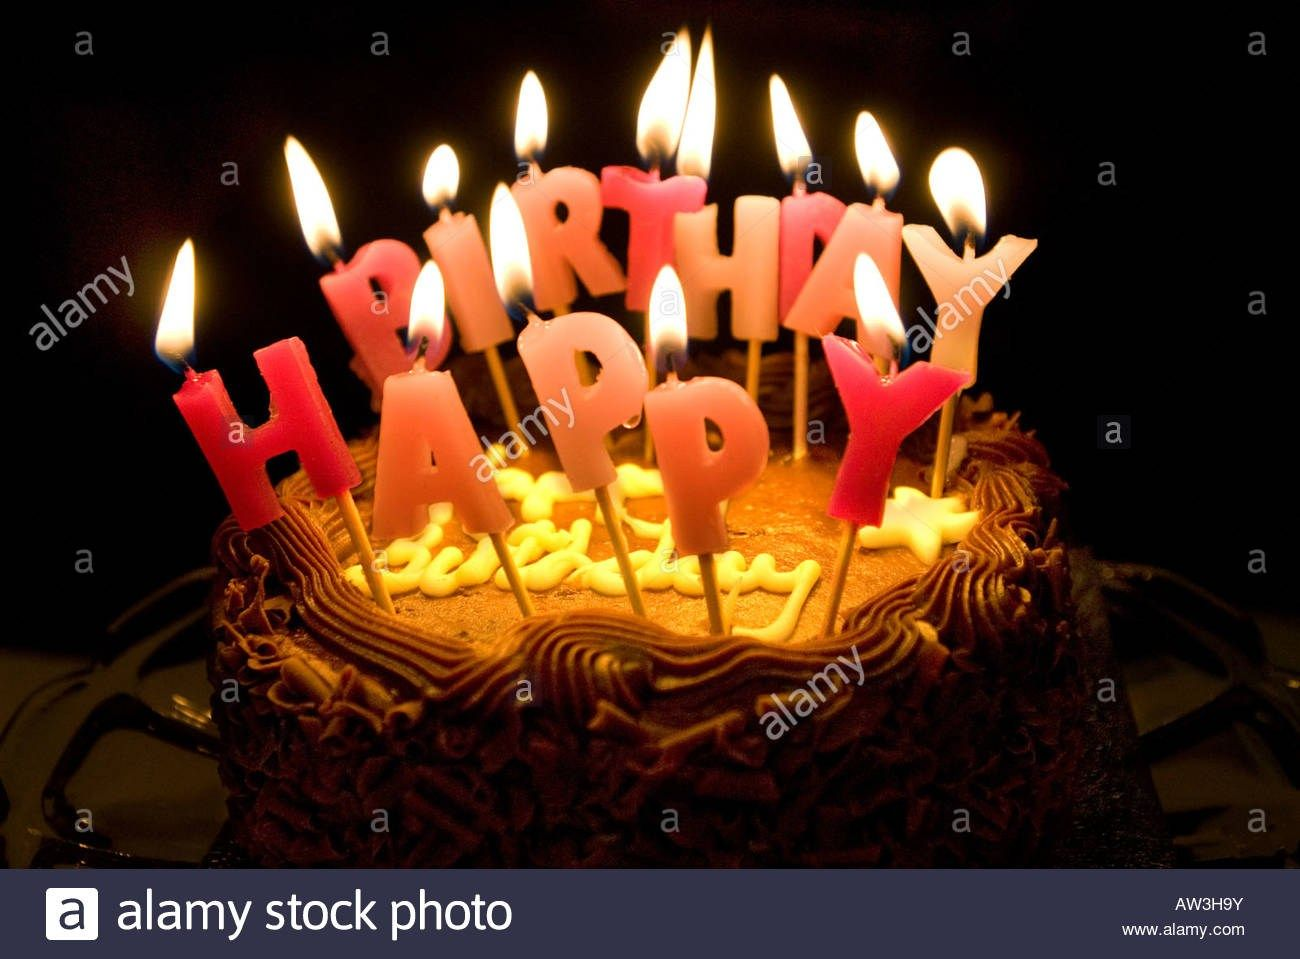 Terrific Birthday Cake Candle Birthday Cake And Candles Susan Shain Funny Birthday Cards Online Elaedamsfinfo